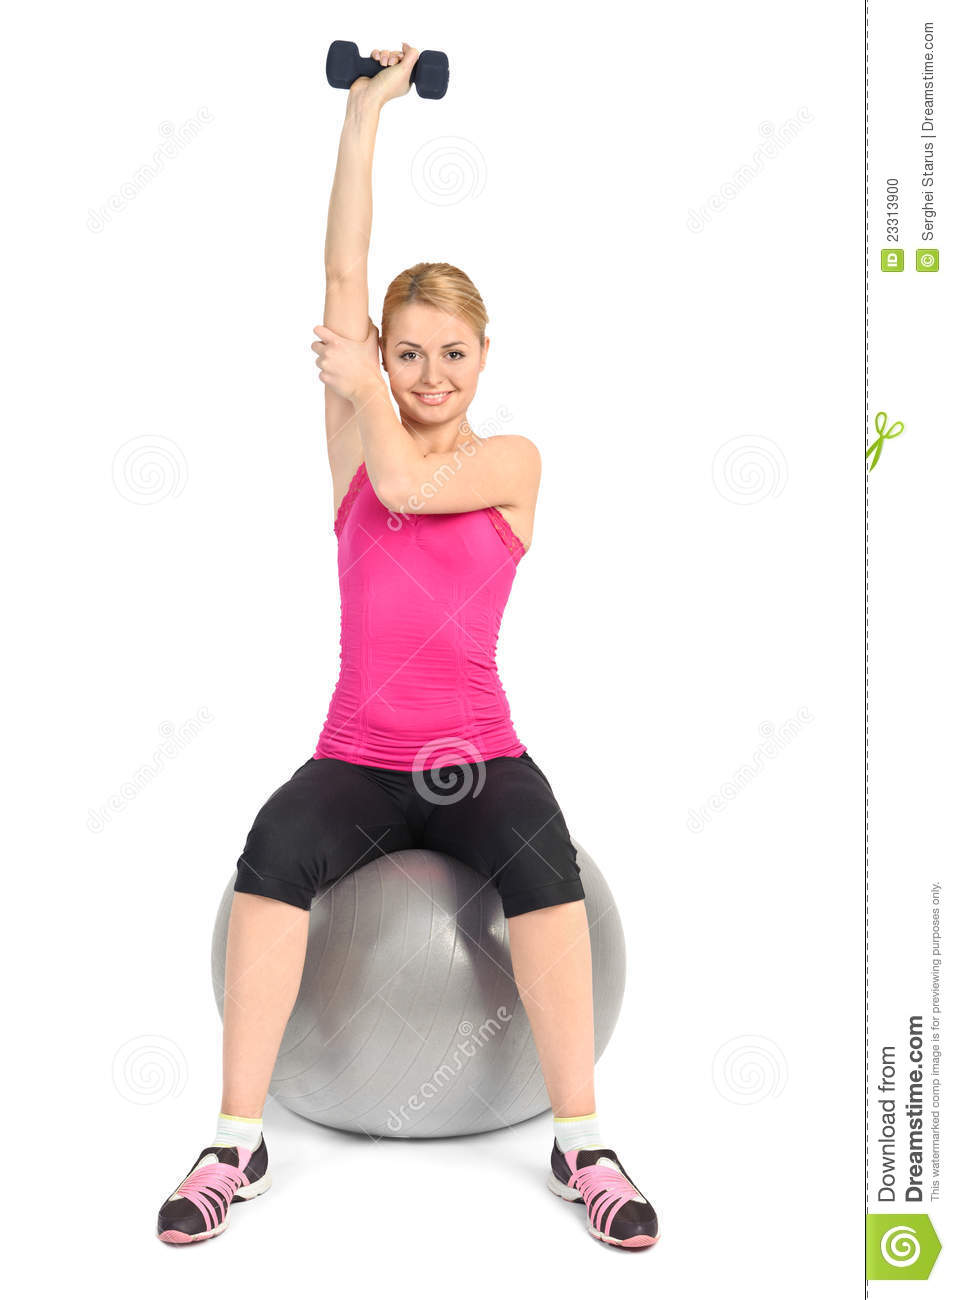 One Arm Triceps Extensions On Fitness Ball Stock Photo ...